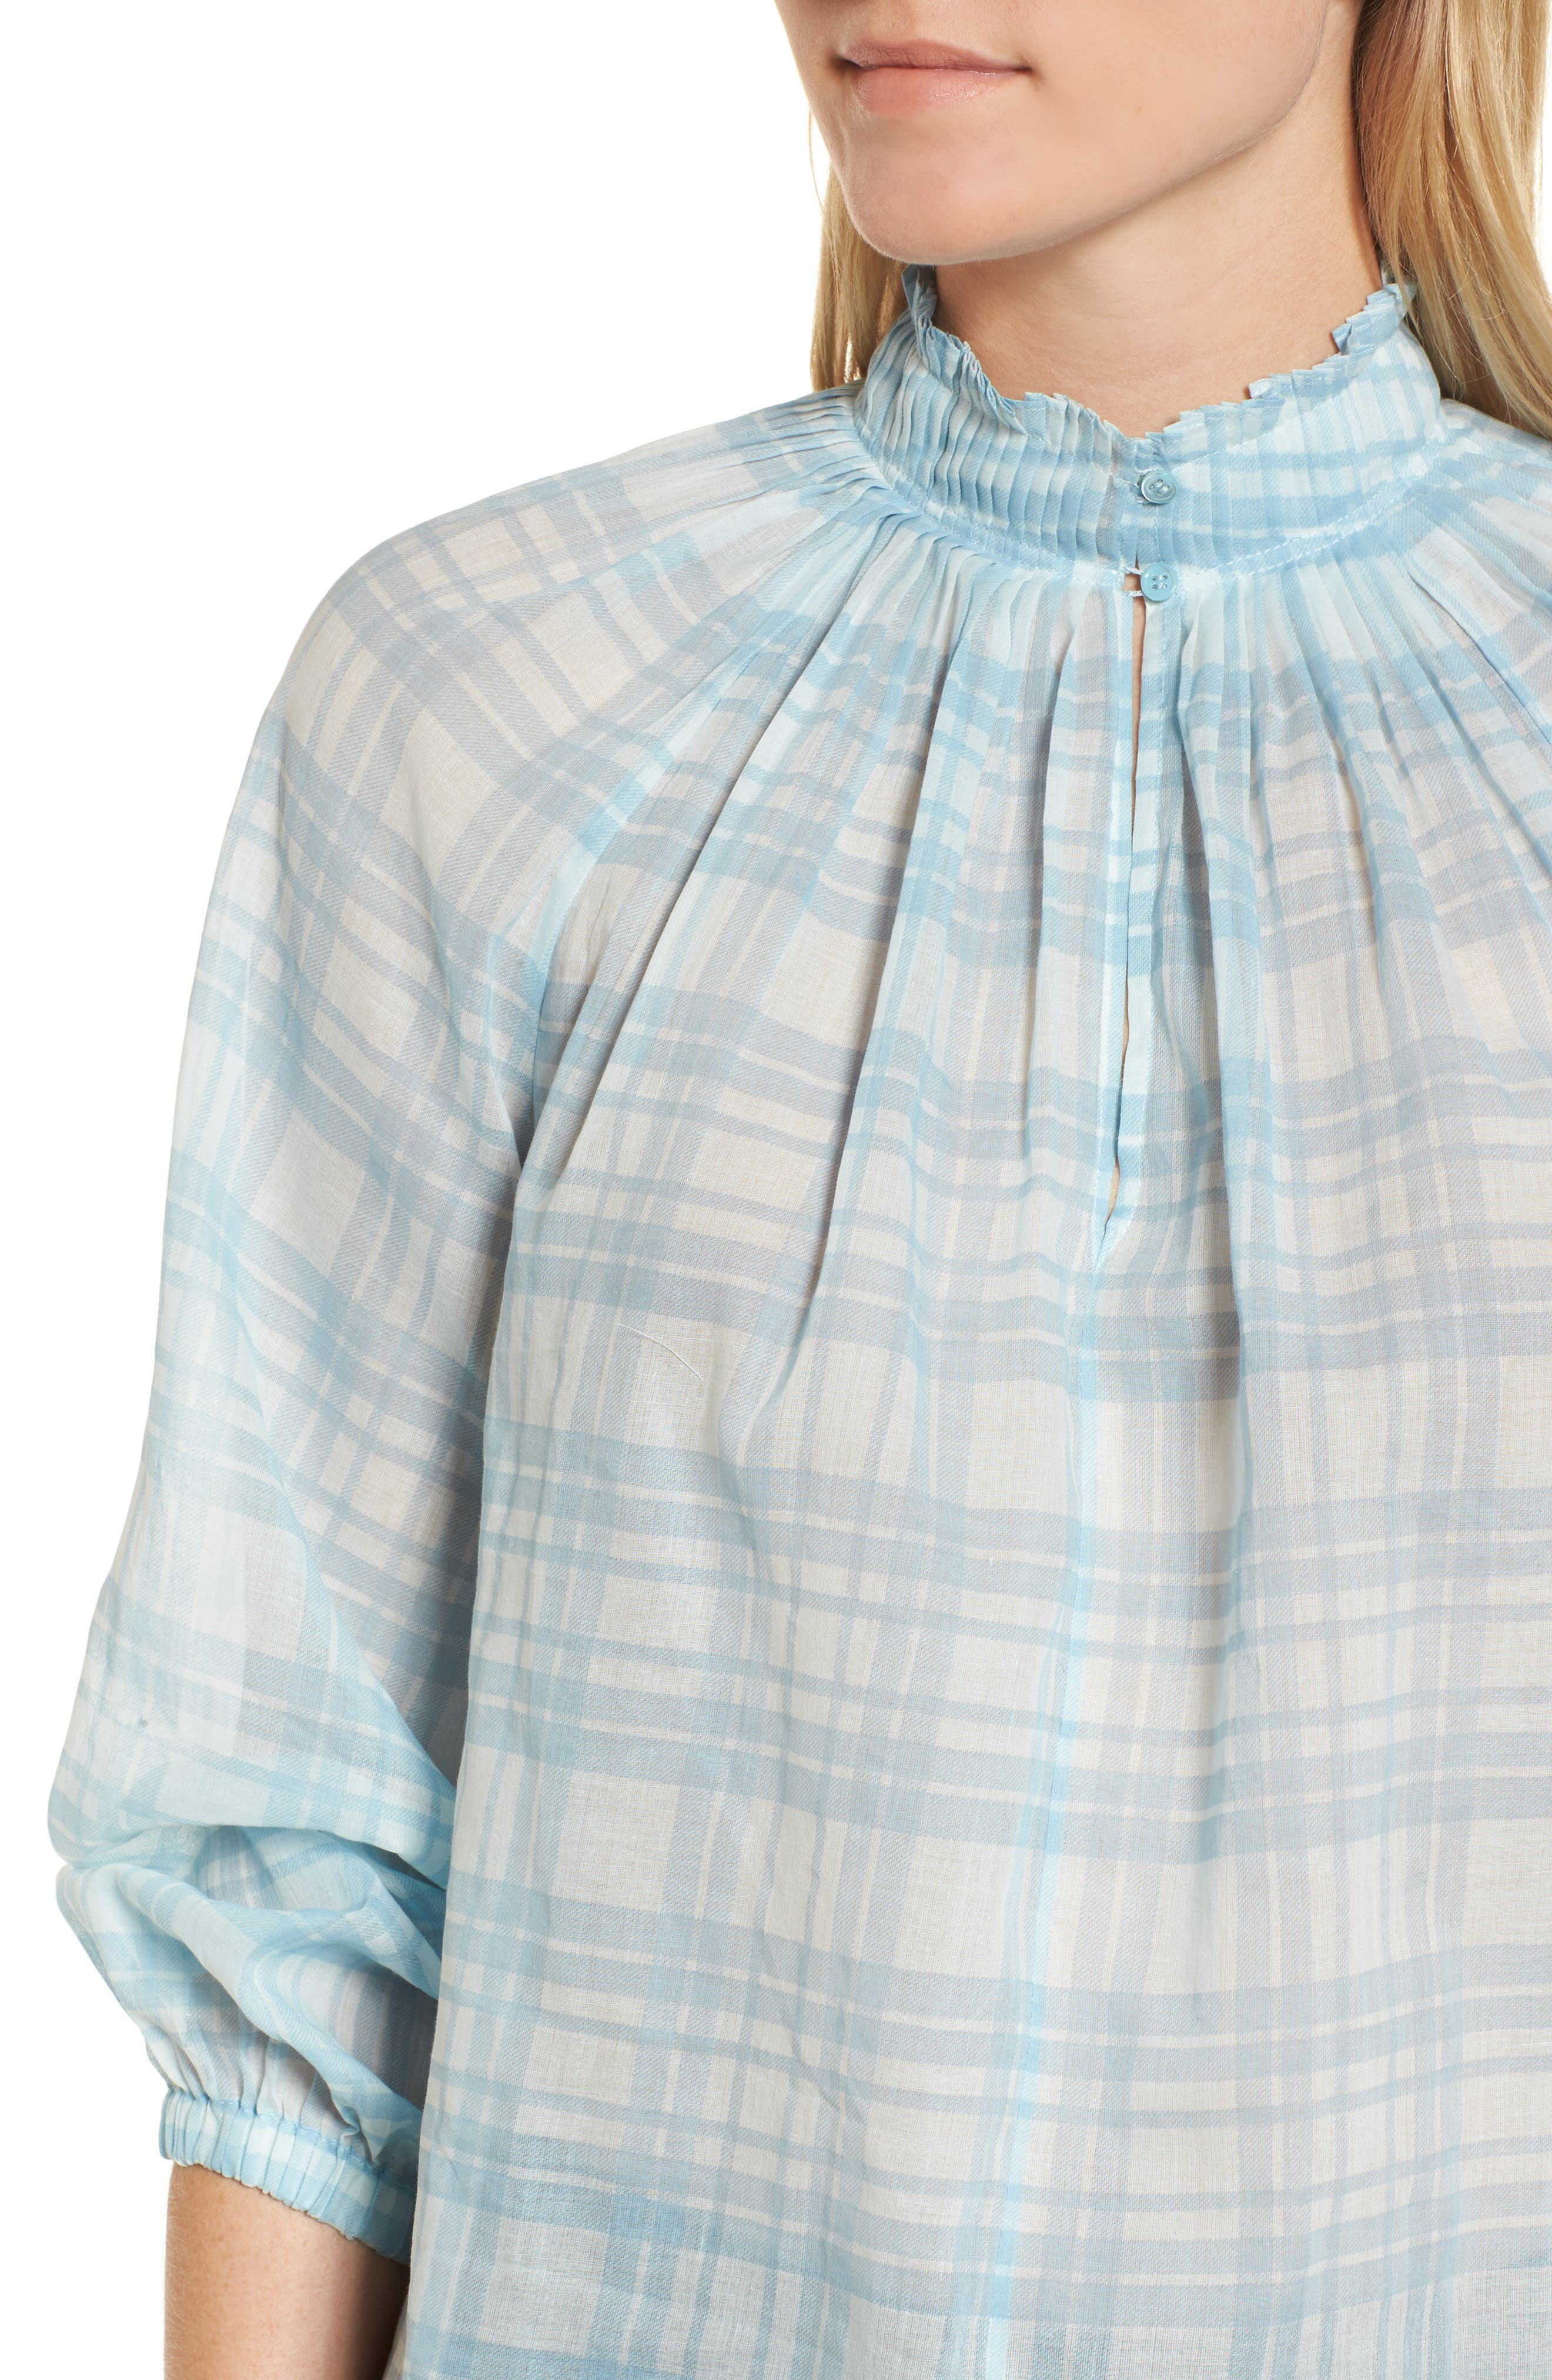 Pleated Detail Top,                             Alternate thumbnail 4, color,                             Blue Gem